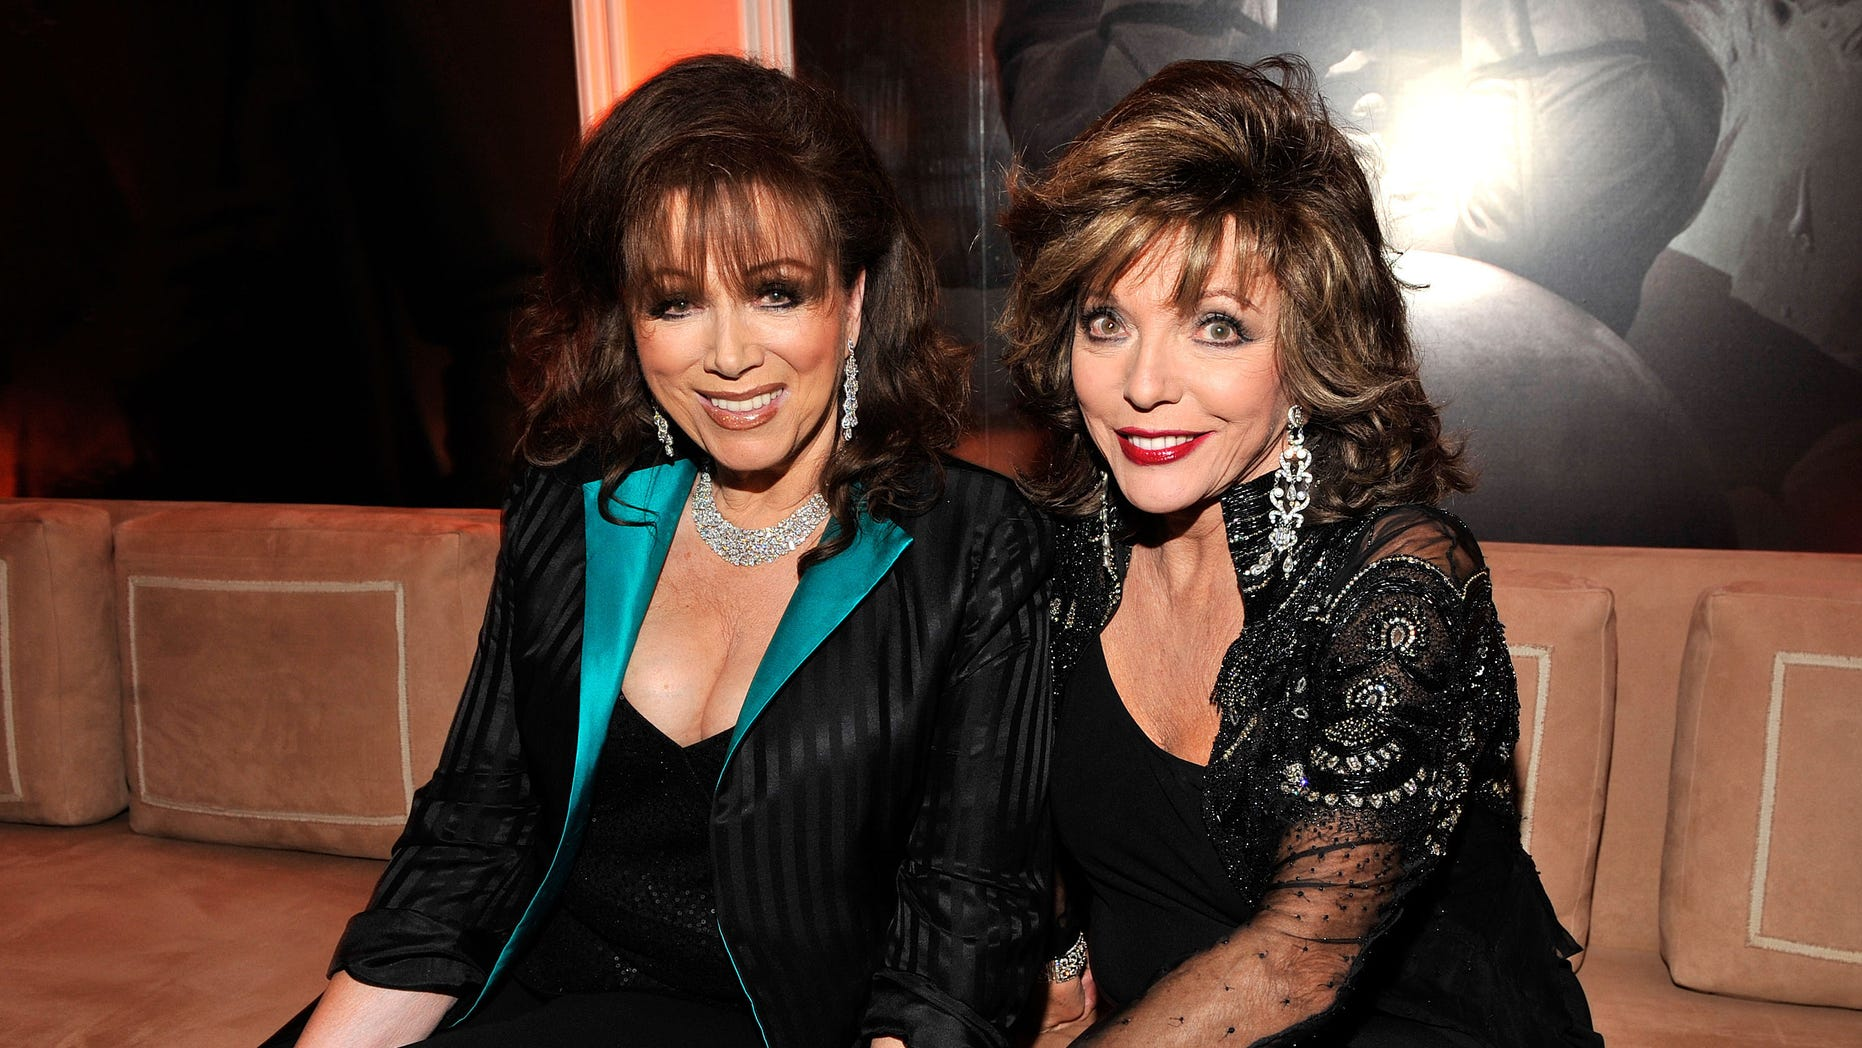 Author Jackie Collins and actress Joan Collins will be the subject of a new dramatized series about their lives.